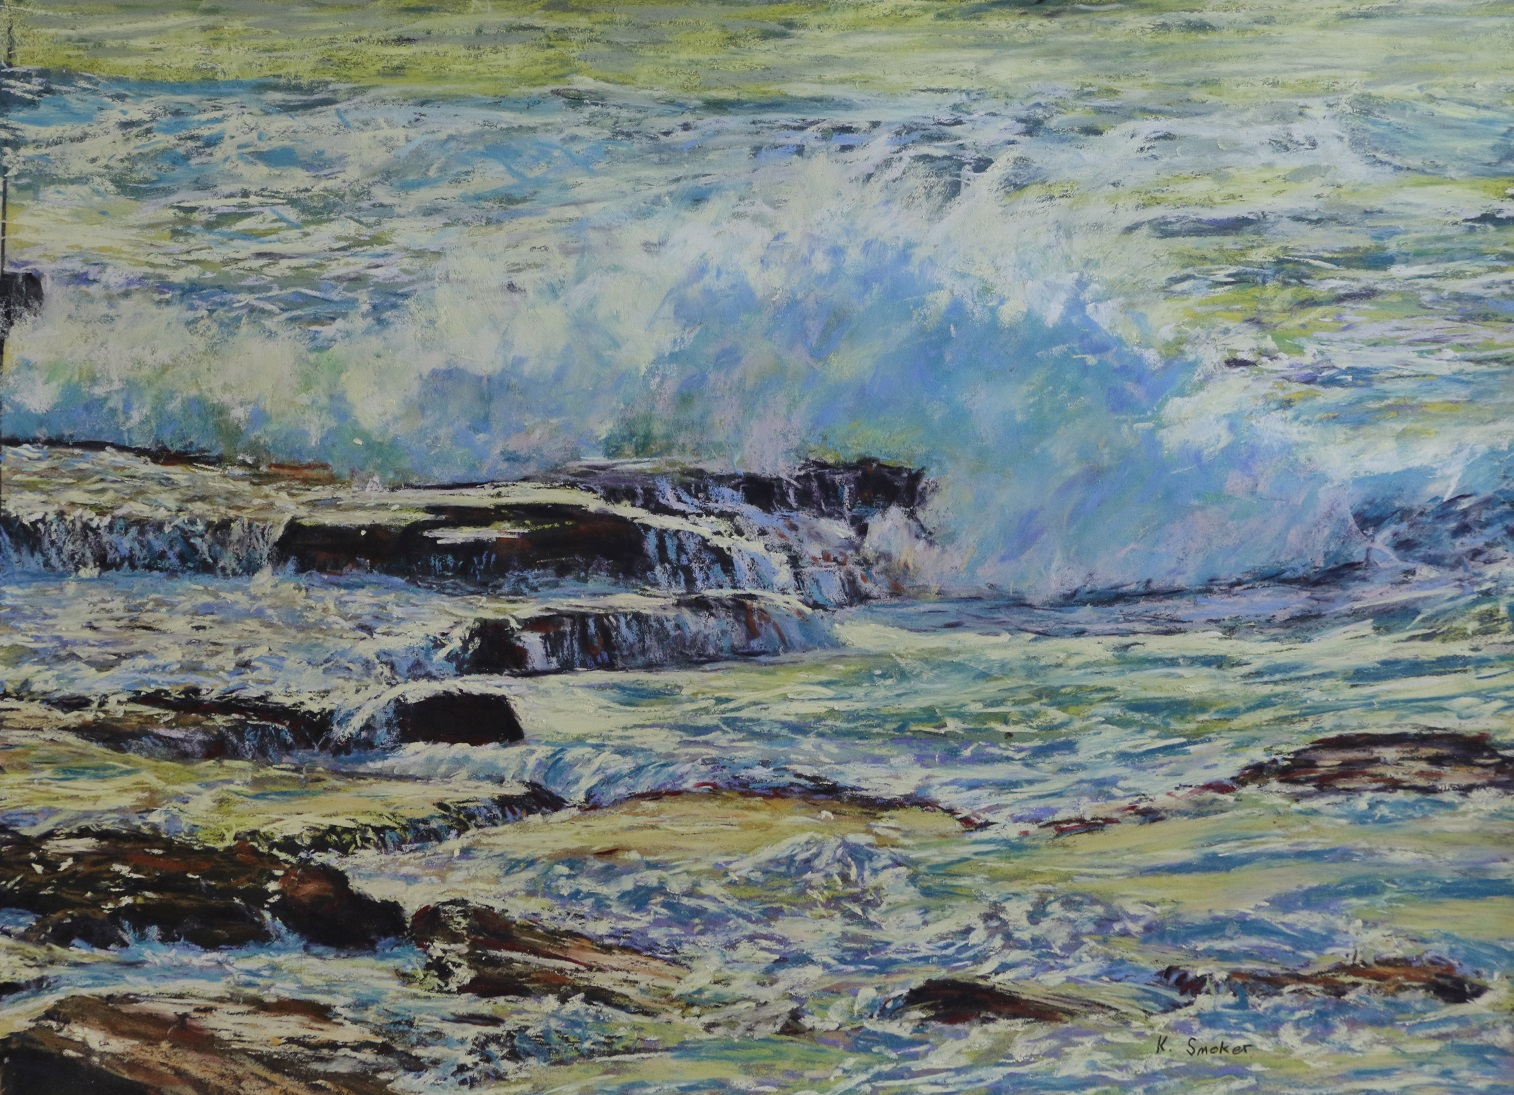 Maroubra Coast V. 17x23in.